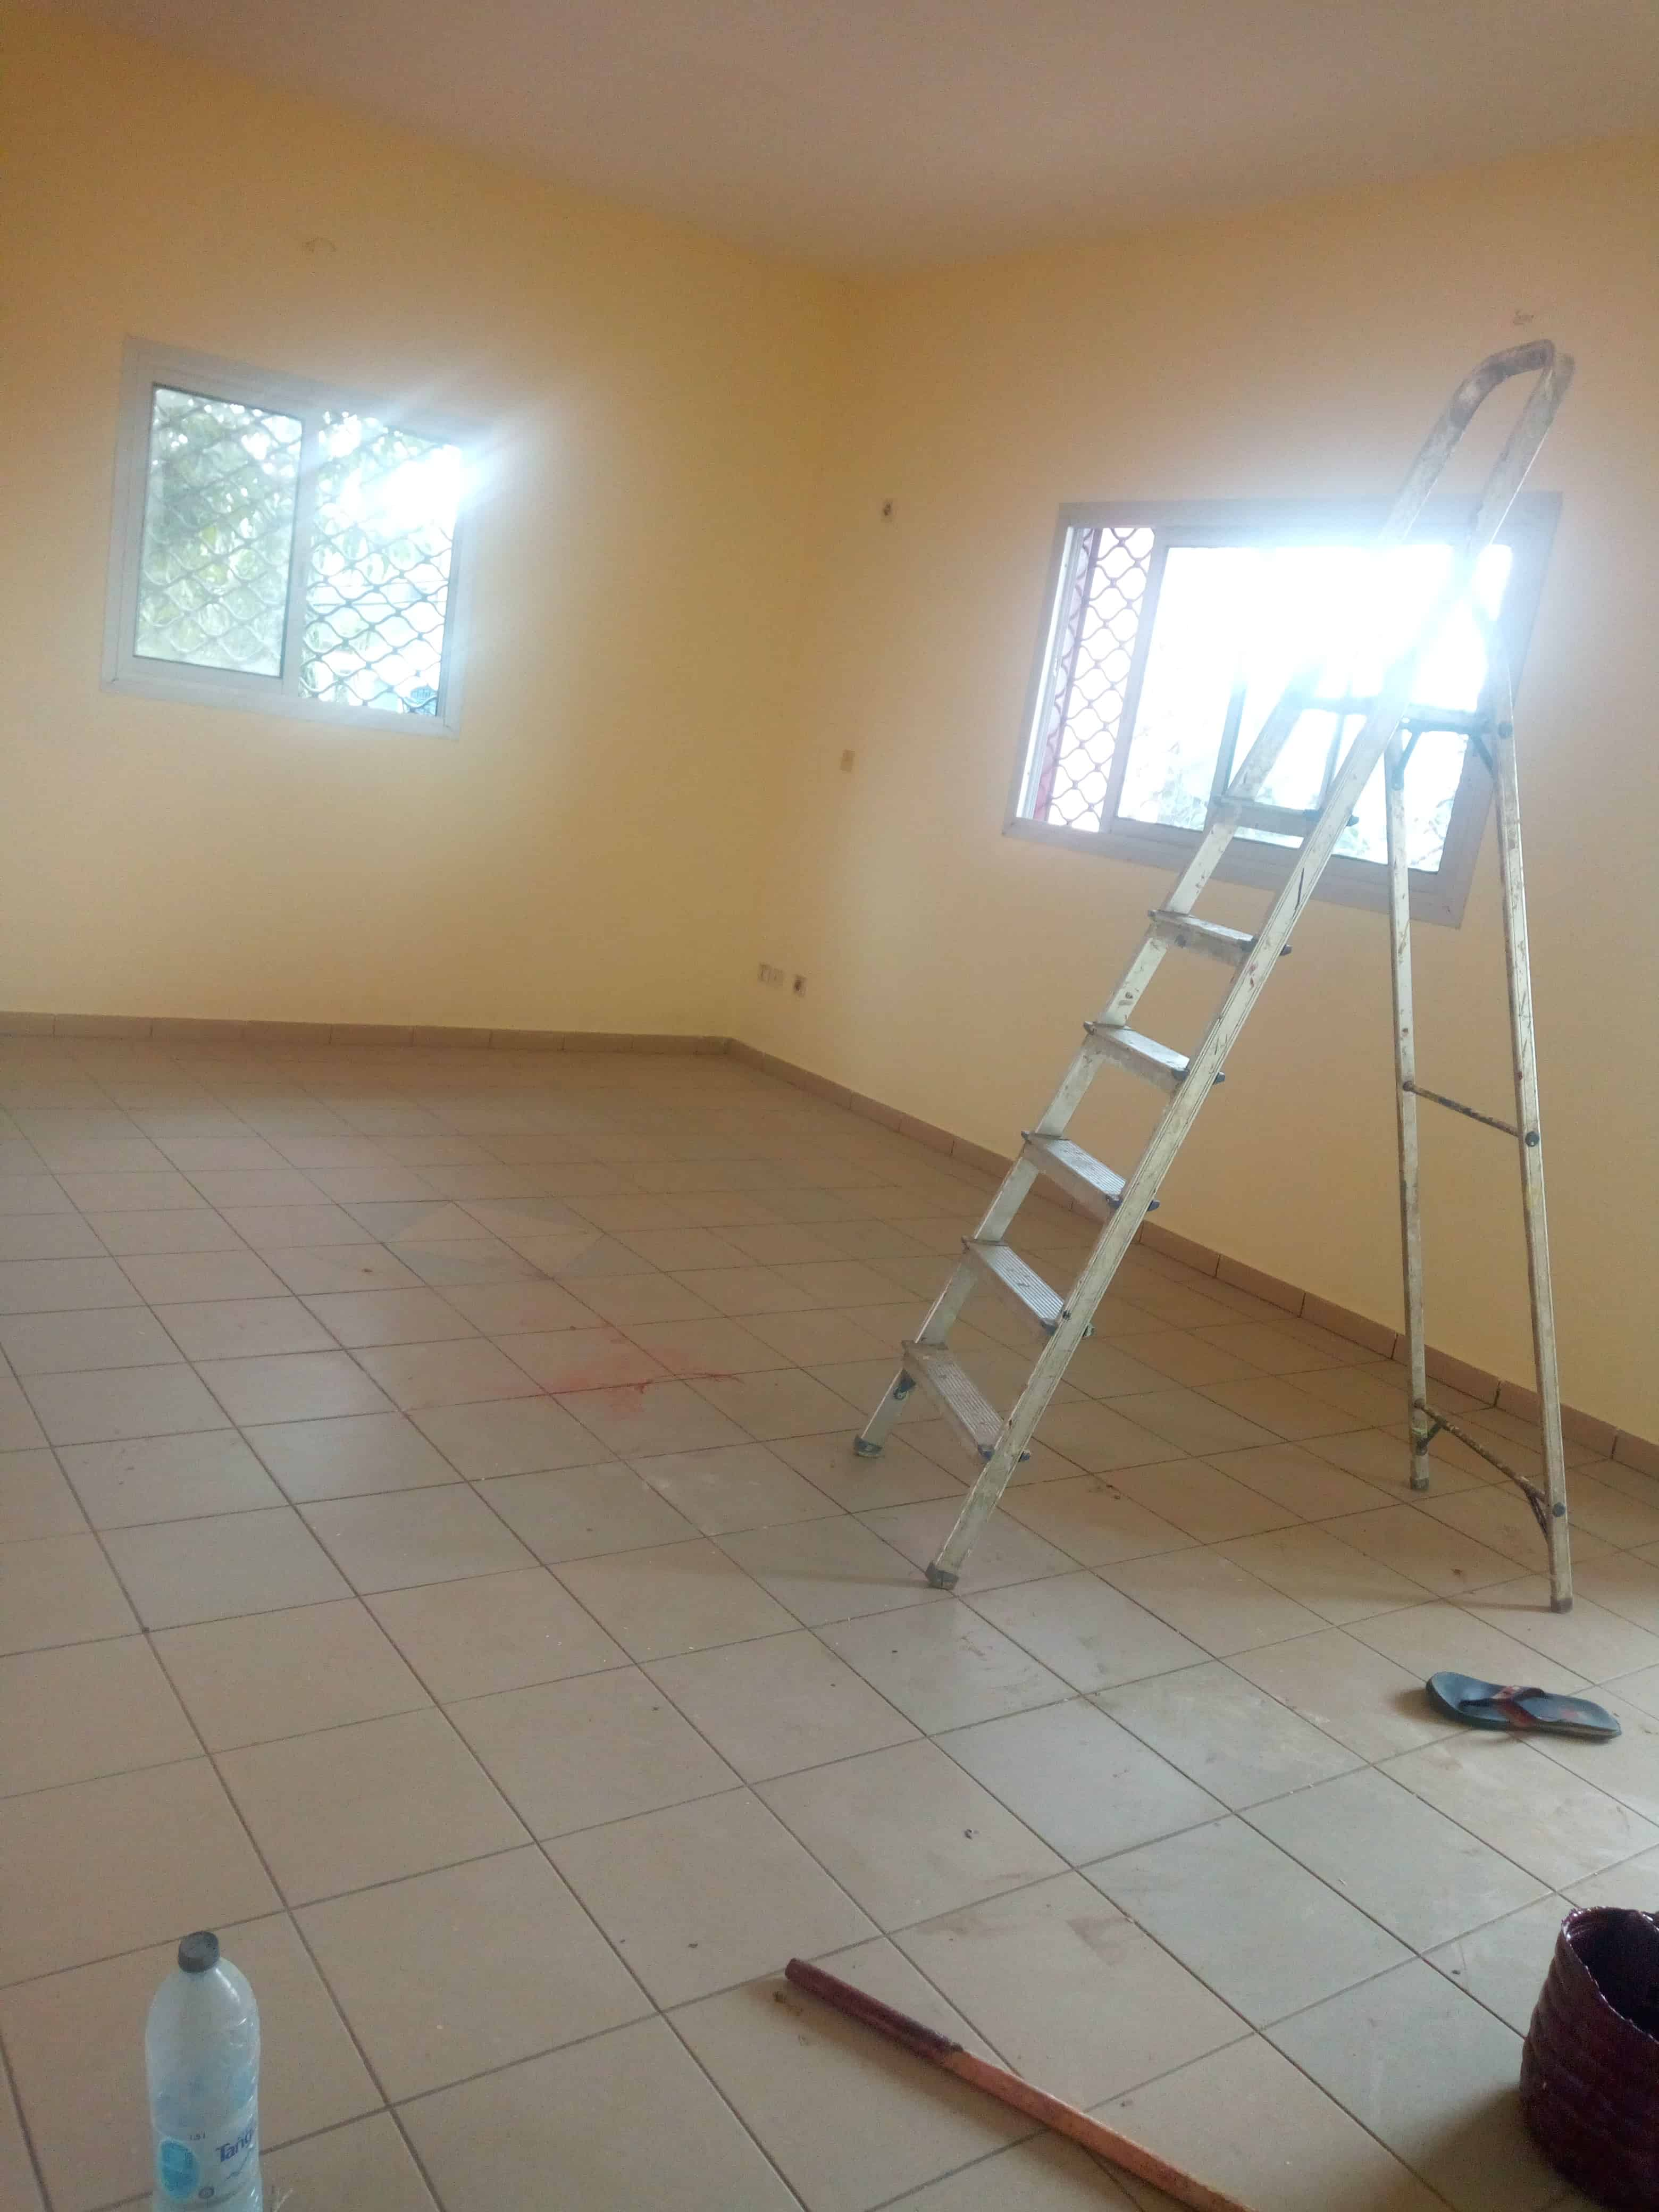 Apartment to rent - Douala, Makepe, Rond pauleng - 1 living room(s), 3 bedroom(s), 2 bathroom(s) - 150 000 FCFA / month